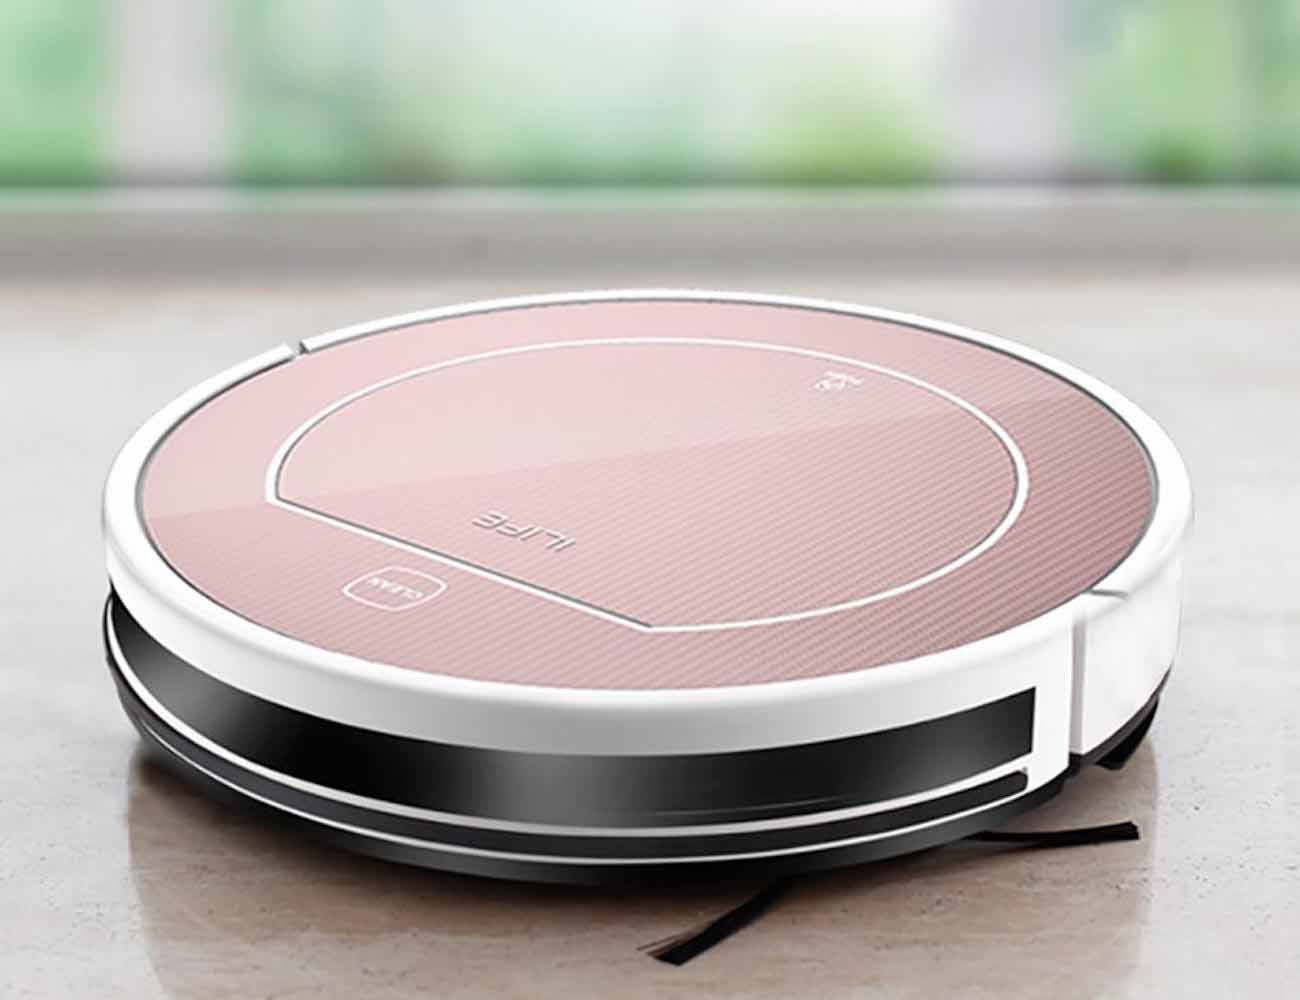 Robotic Vacuum - The Ultimate Cleaner